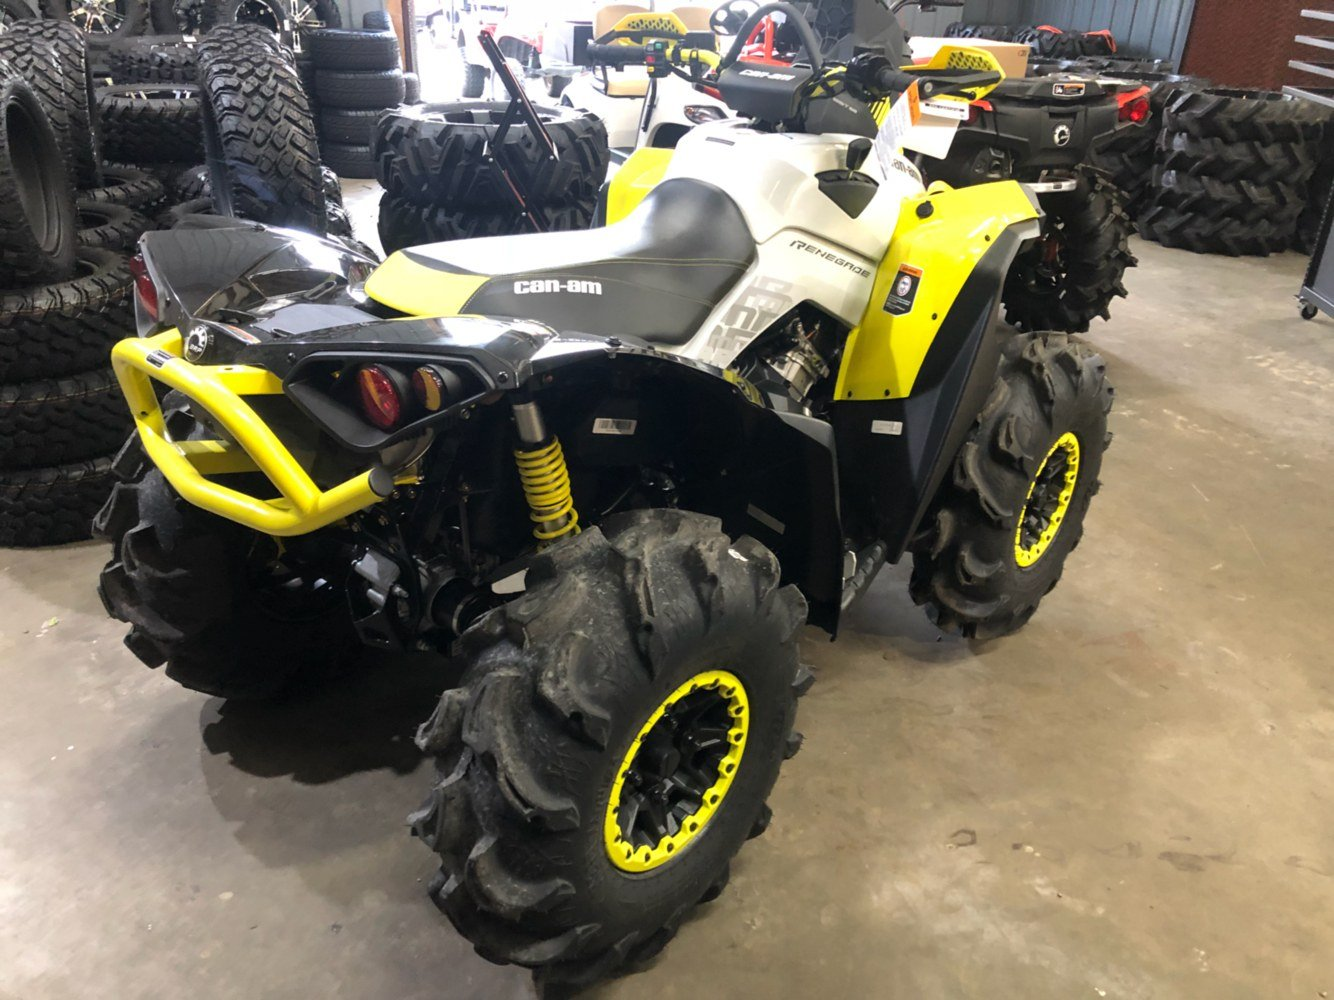 2019 Can-Am Renegade X MR 570 in Douglas, Georgia